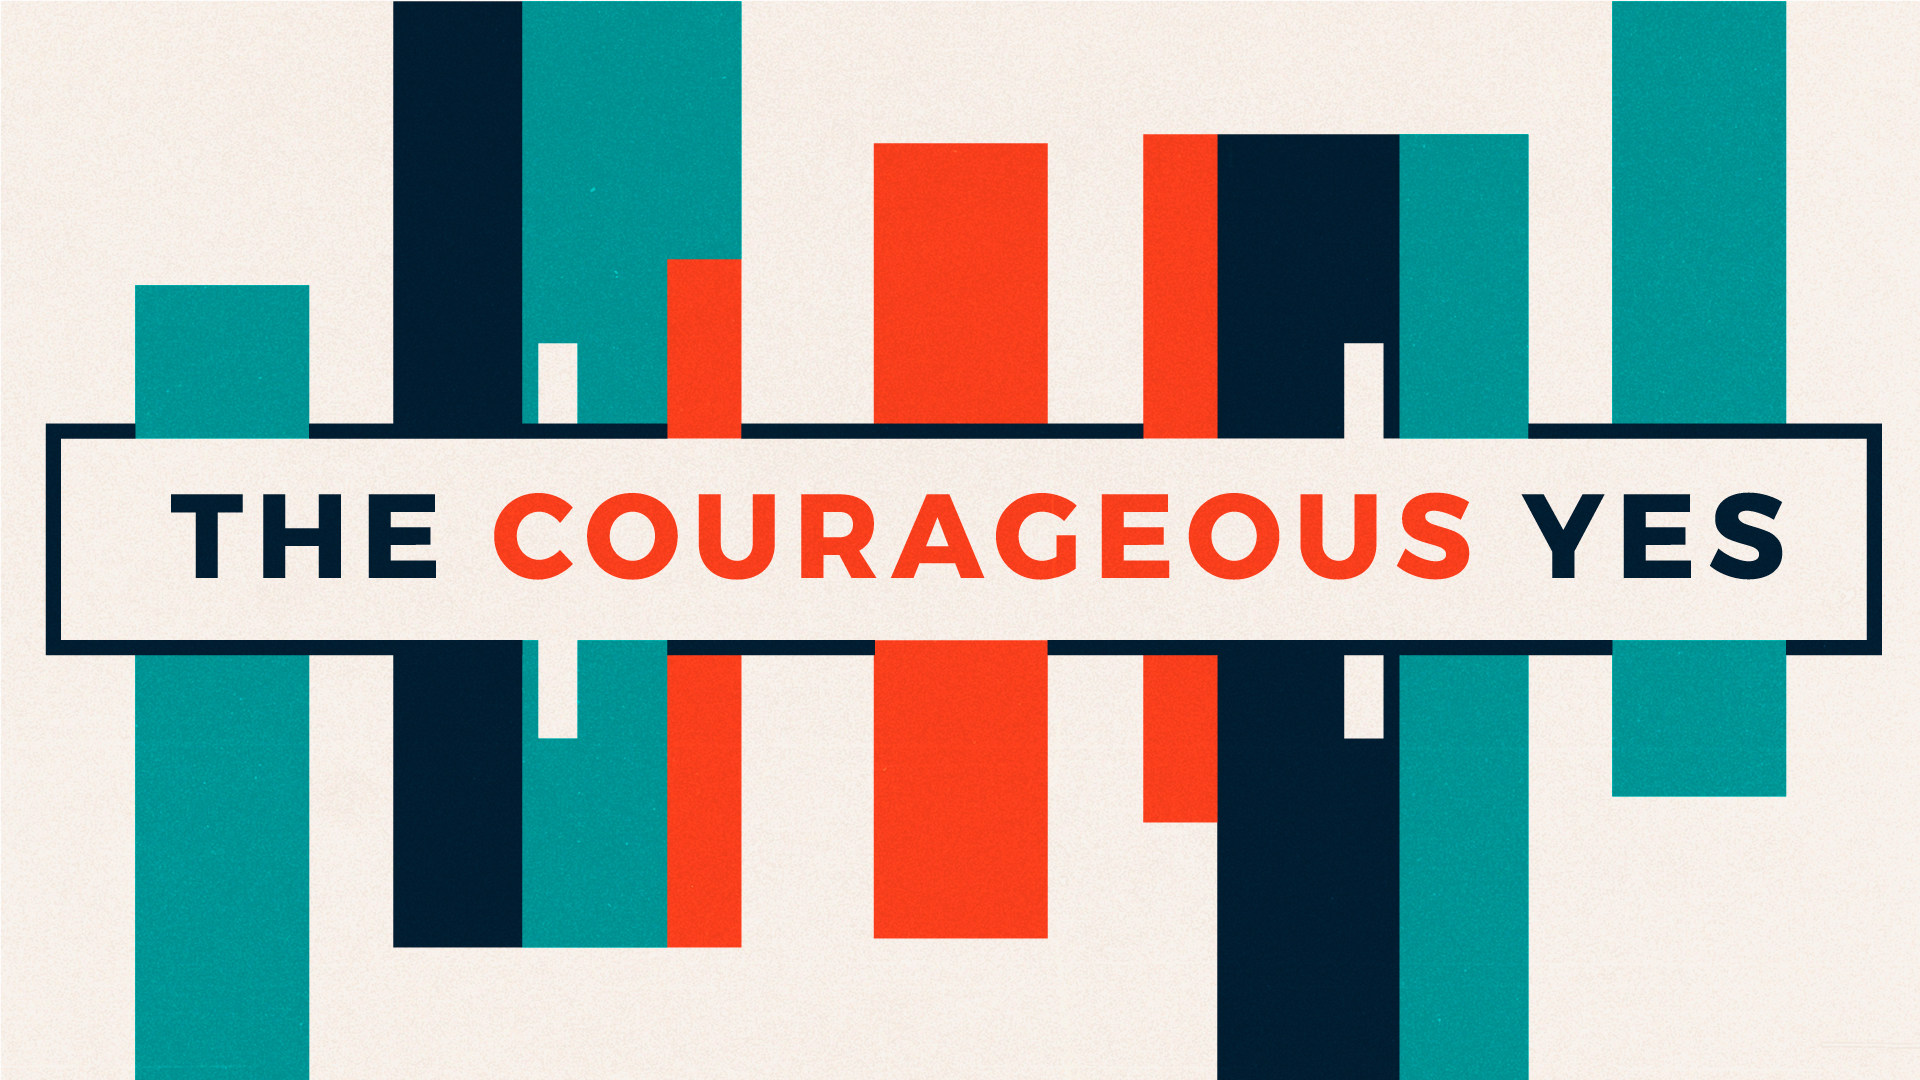 The Courageous Yes